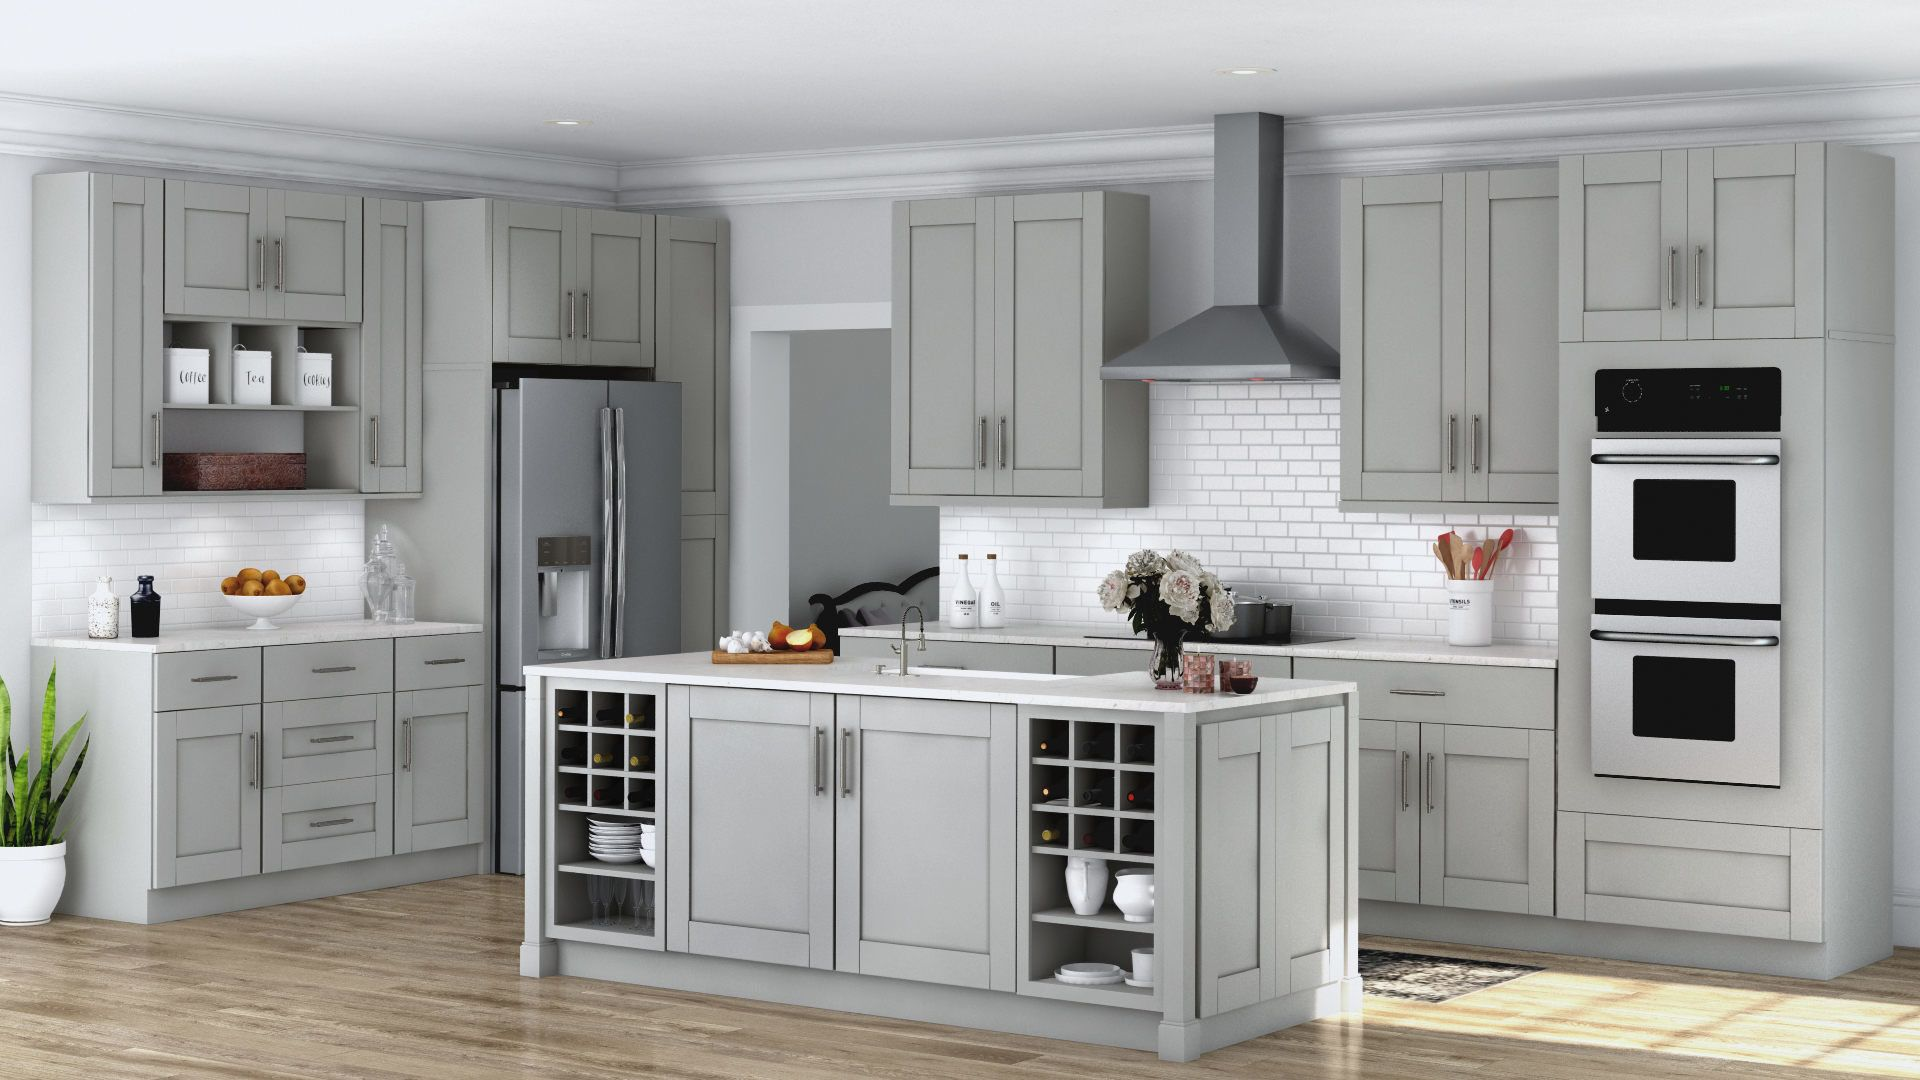 Shaker Base Cabinets In Dove Gray Kitchen The Home Depot Island With Walnut Butcher Block Home Depot Kitchen Home Depot Cabinets Grey Kitchen Cabinets